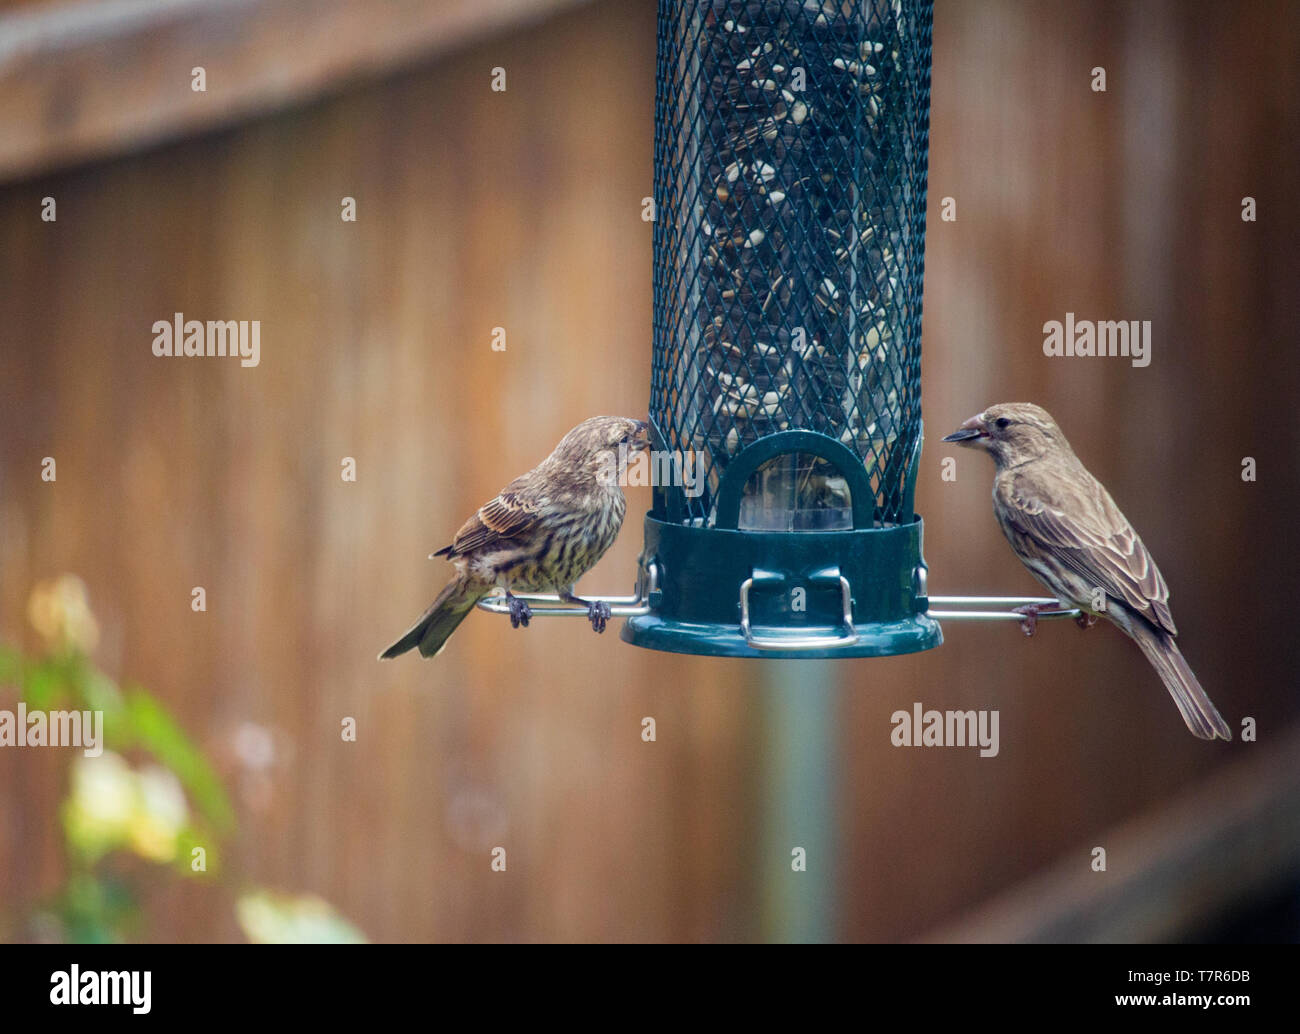 https://c7.alamy.com/comp/T7R6DB/wrens-at-bird-feeder-T7R6DB.jpg